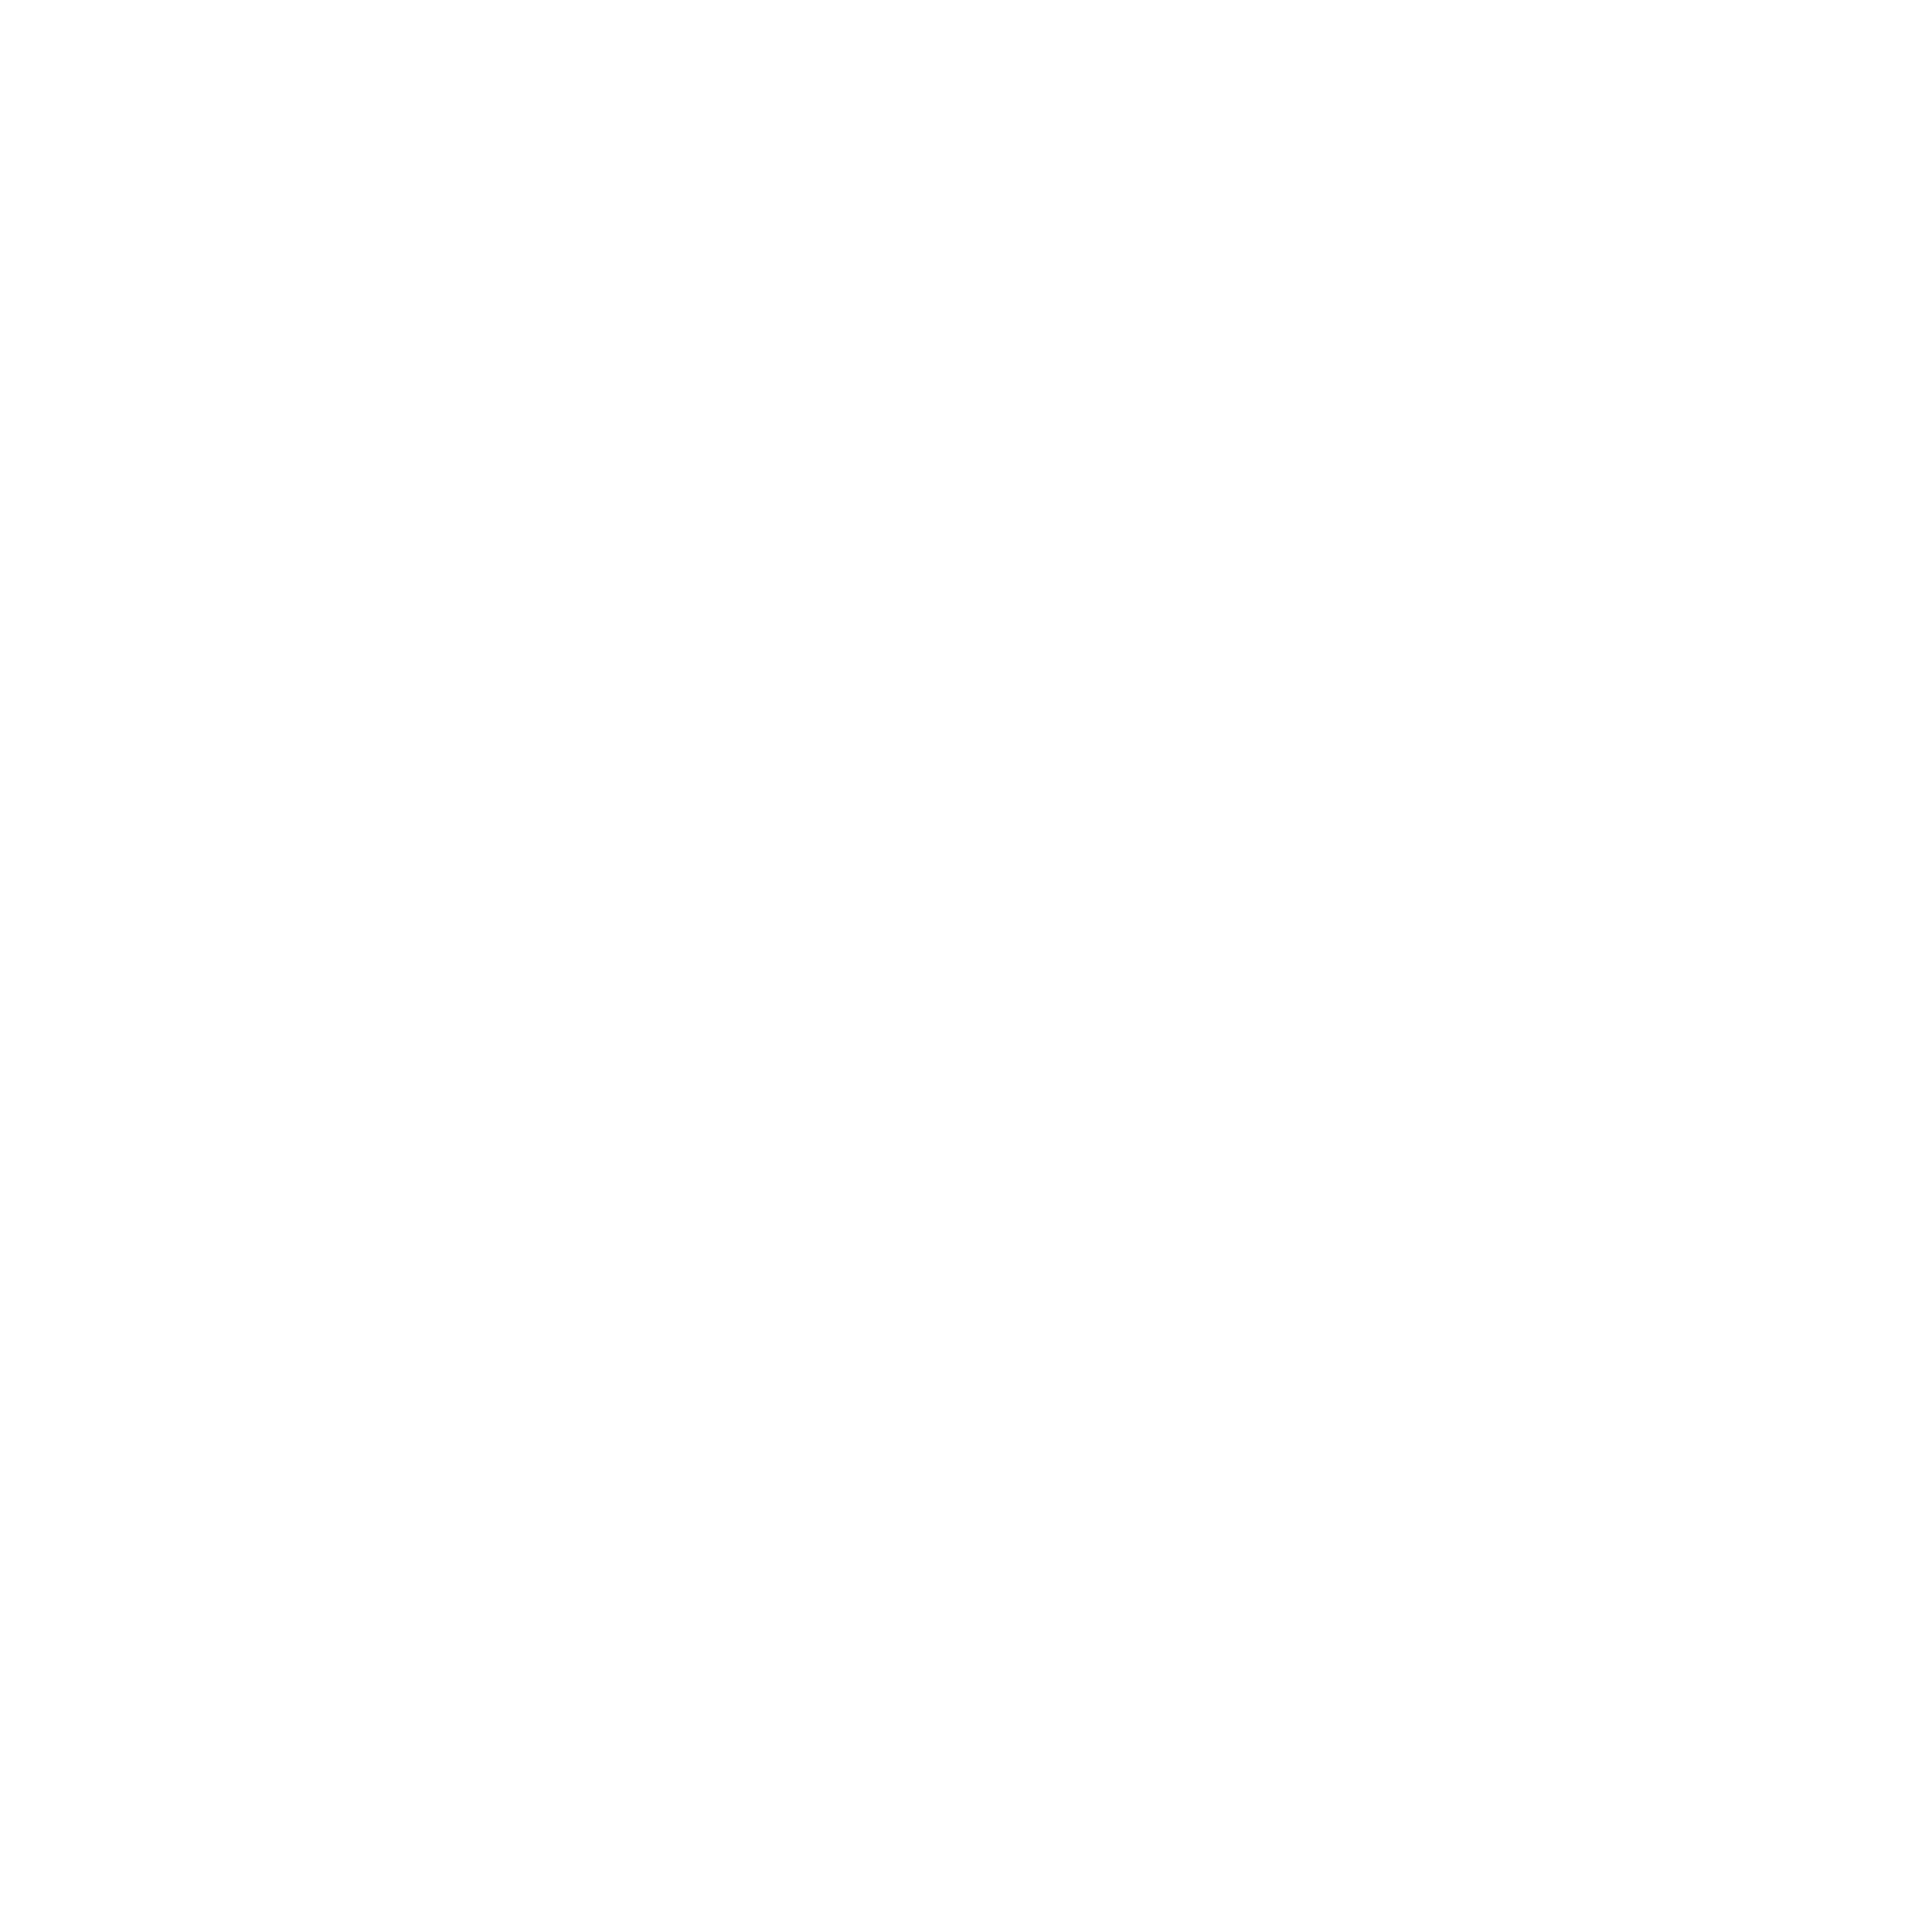 UI Mother